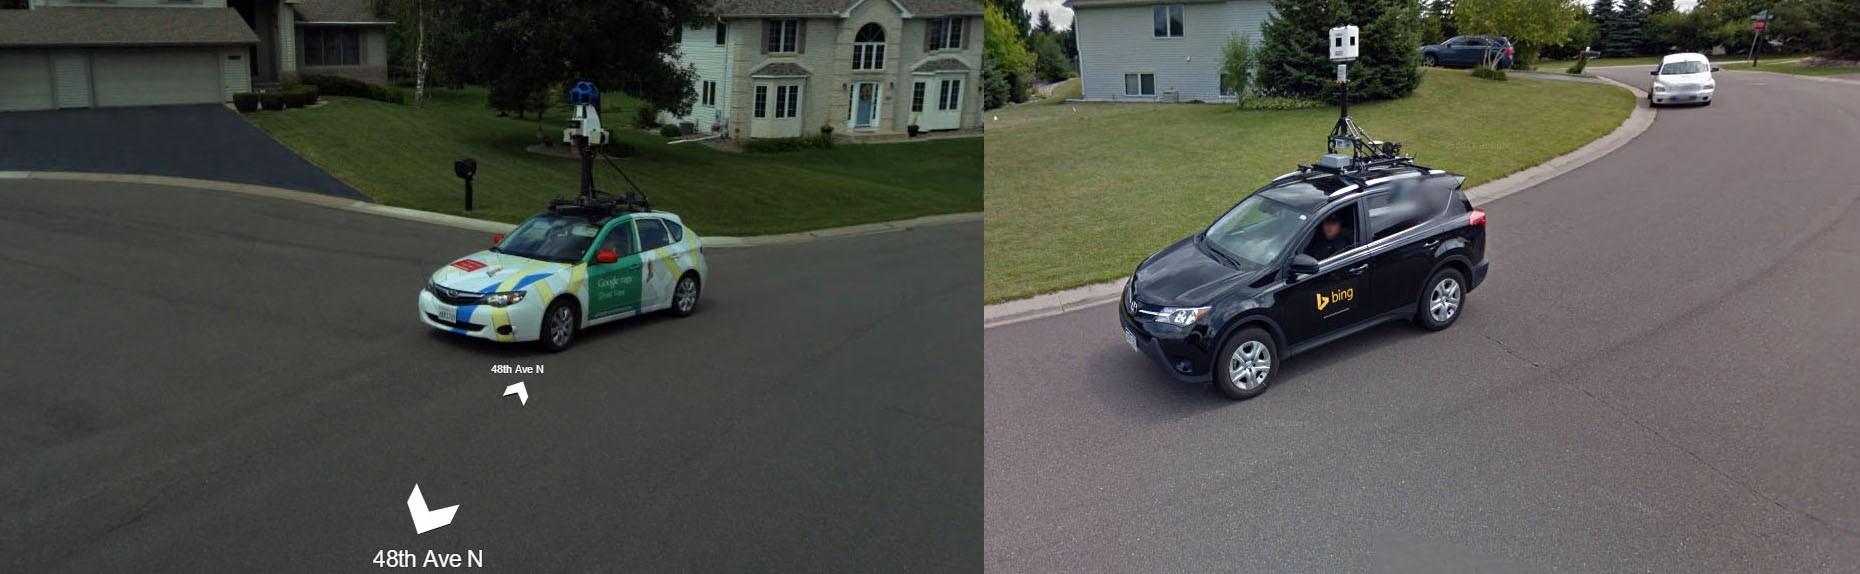 bing maps and google maps cars photographing each other